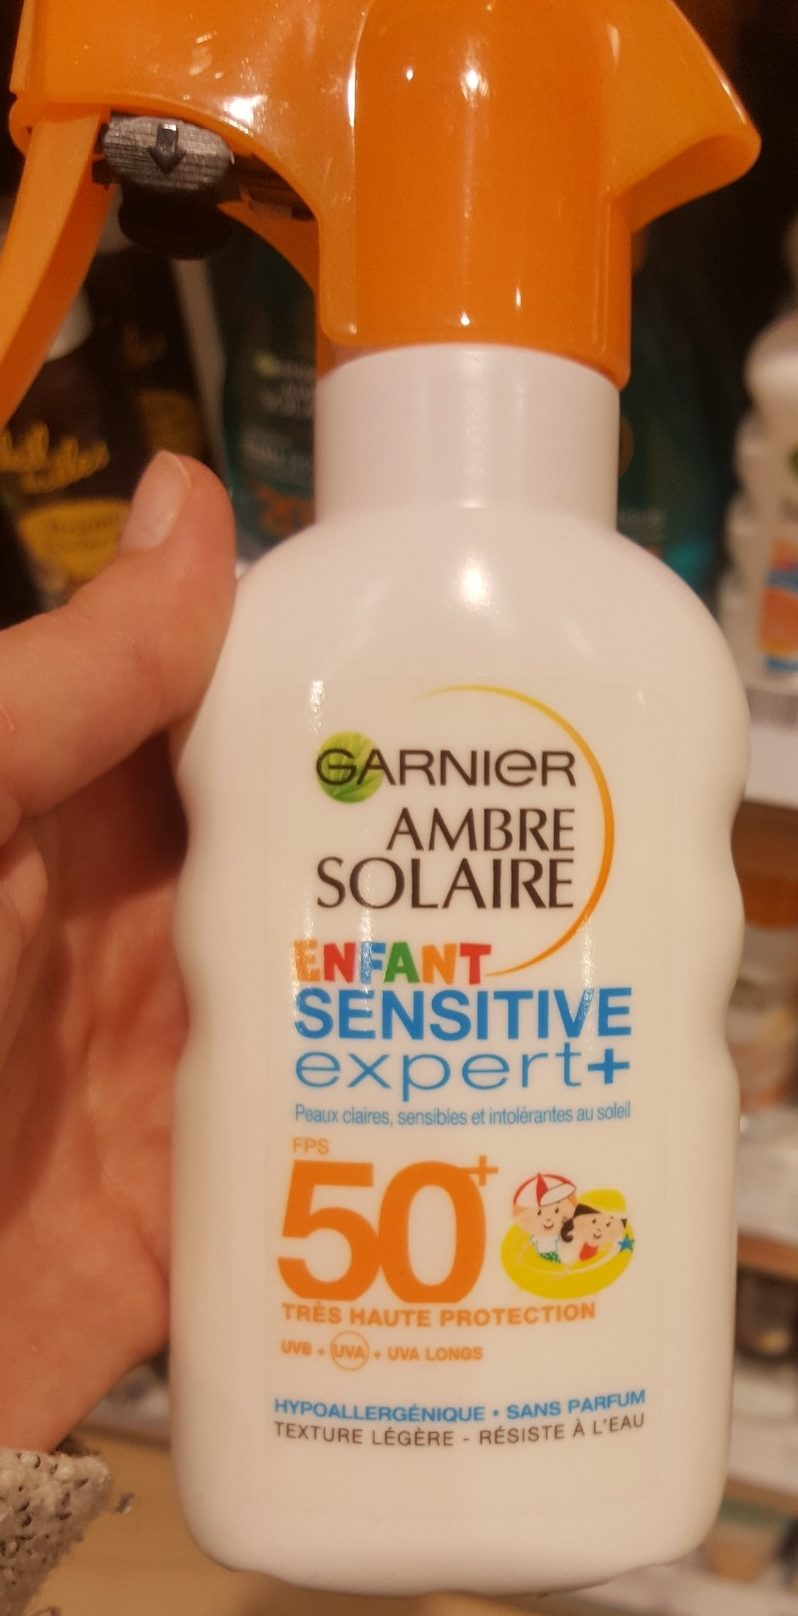 Ambre Solaire Enfant Sensitive Expert FPS 50+ - Product